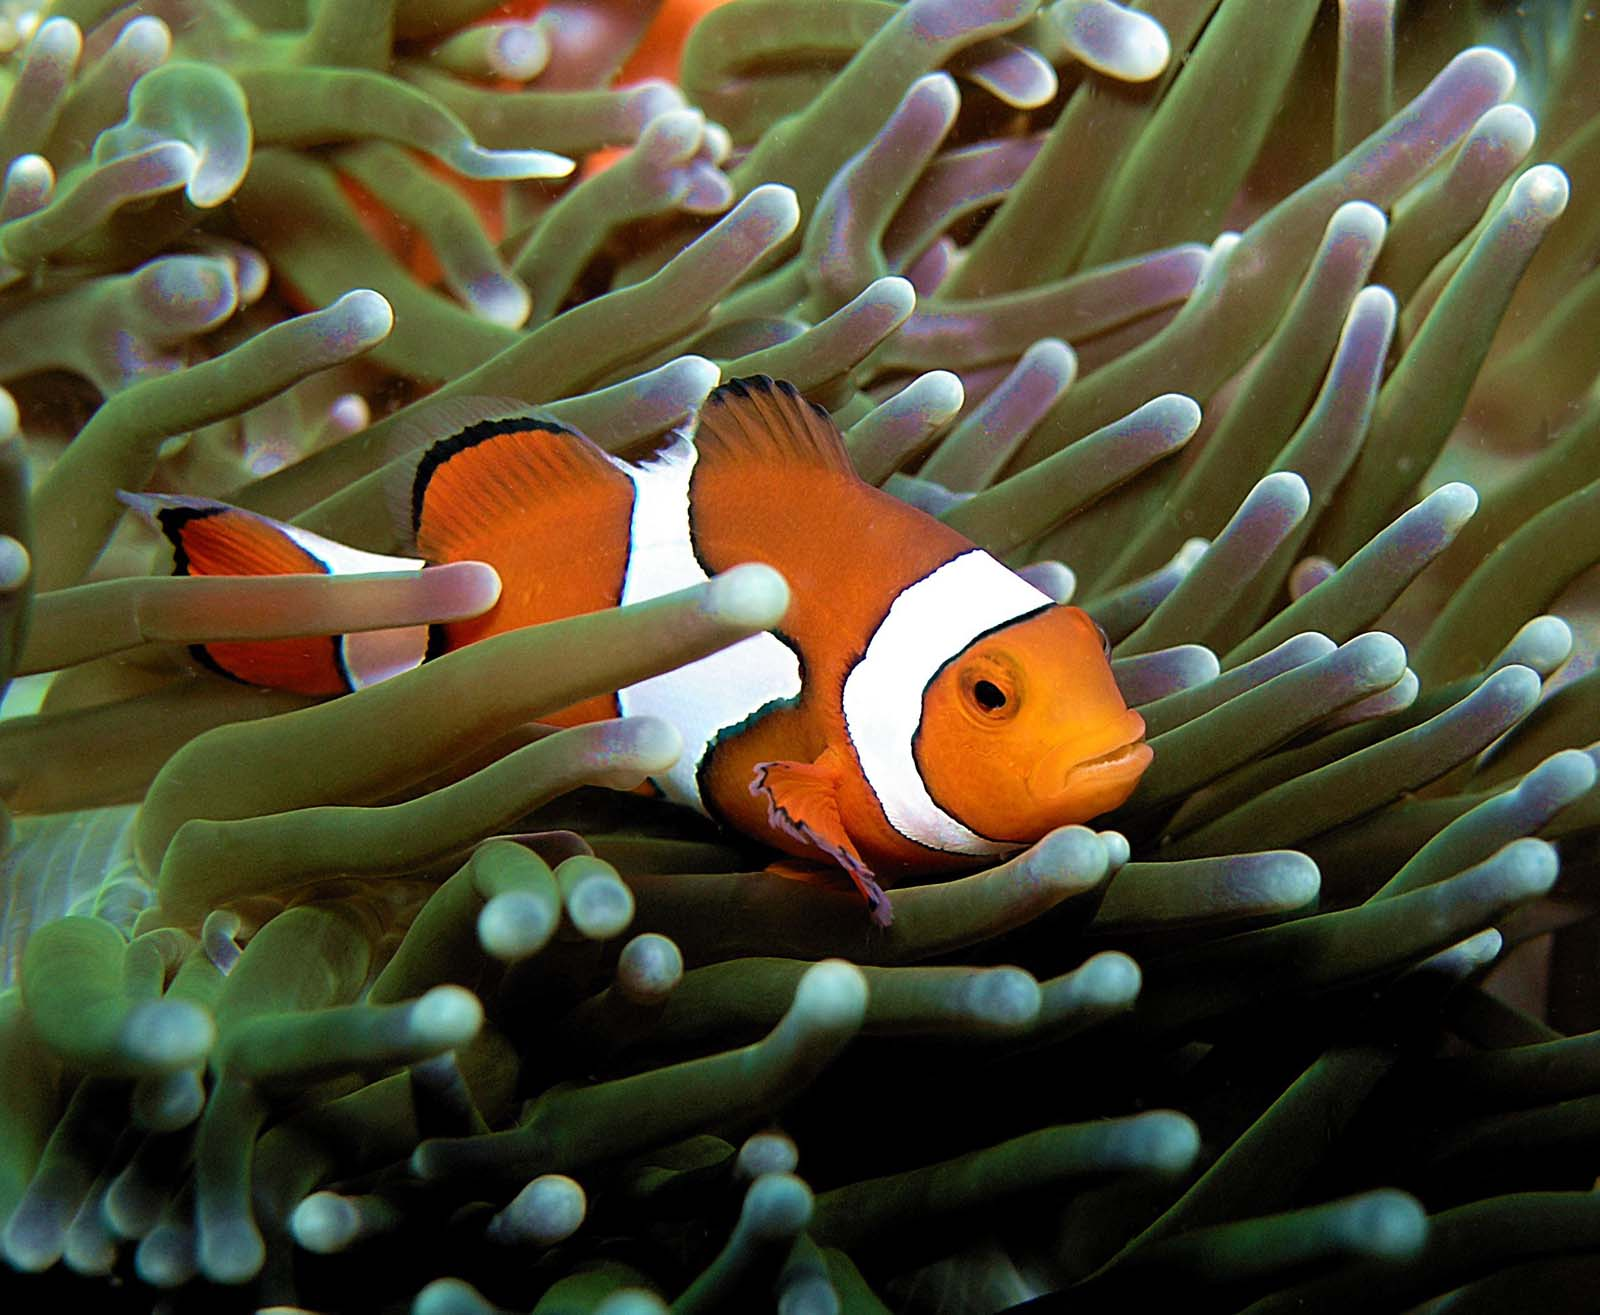 Neoniphon opercularis madang ples bilong mi for Clown fish for sale